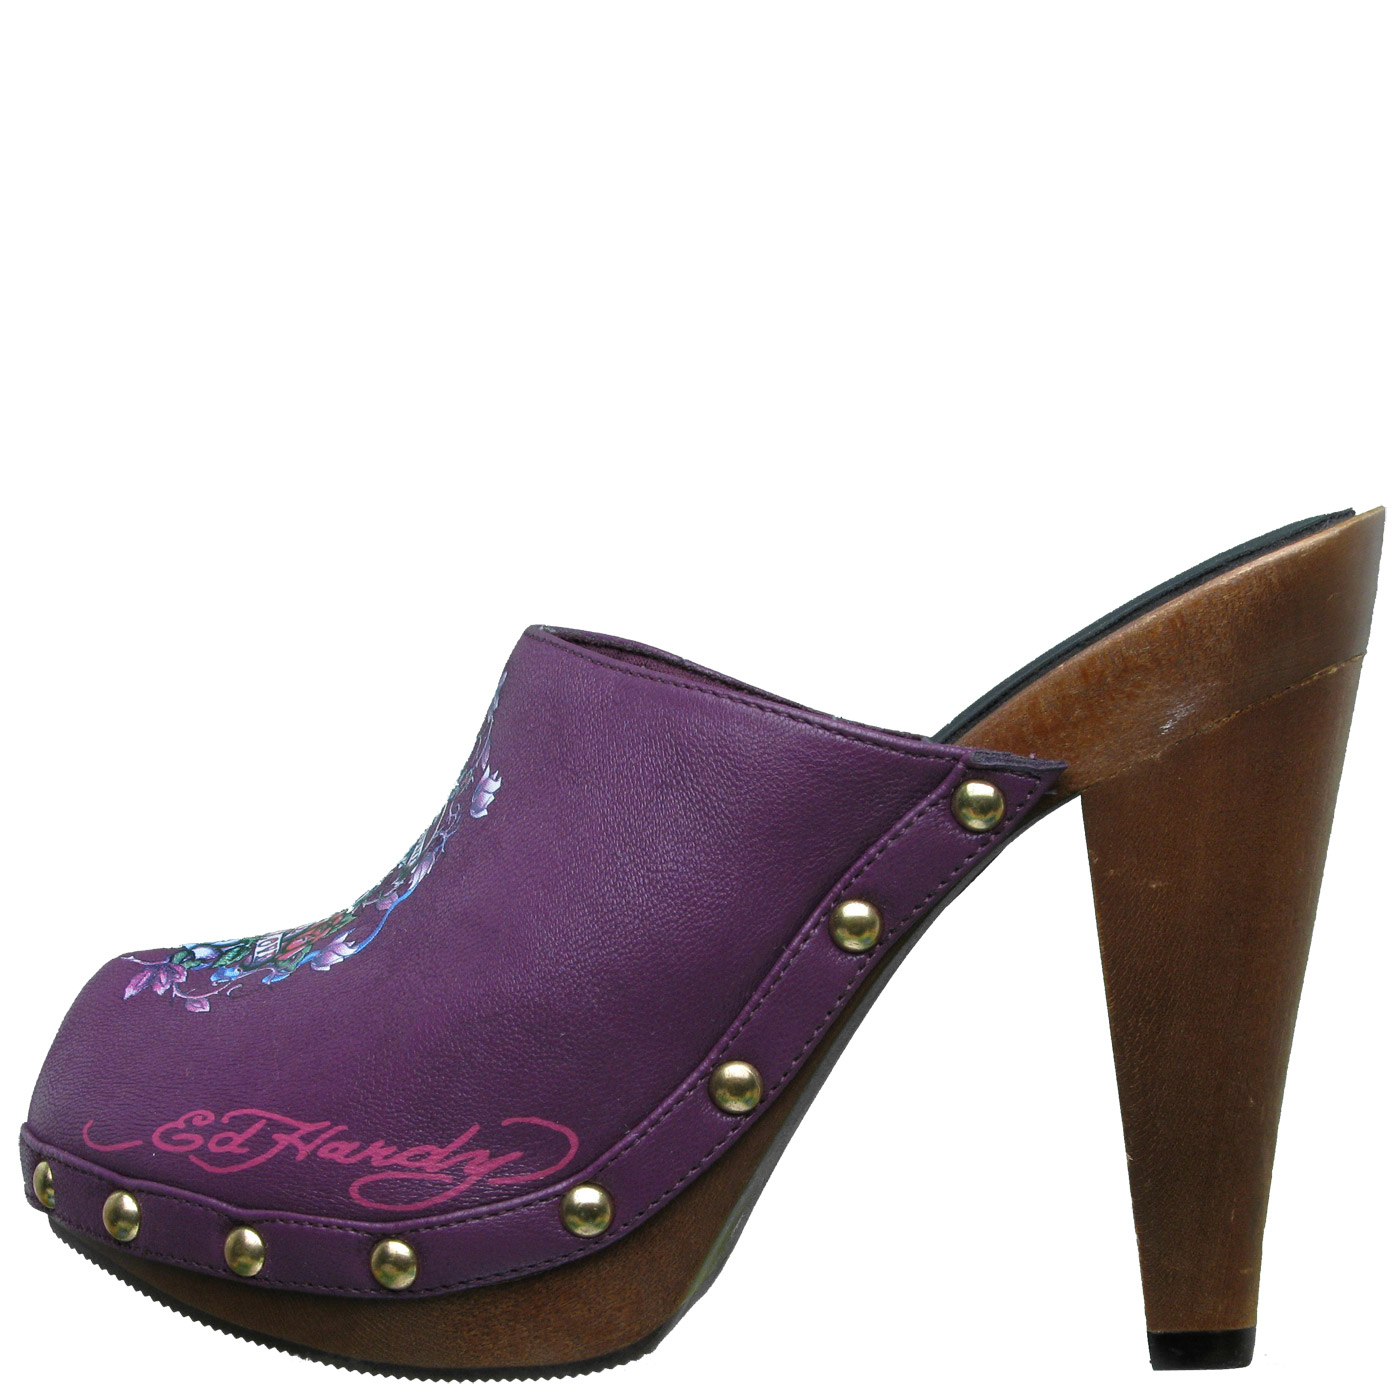 Ed Hardy Portland Pump Shoe for Women - Purple